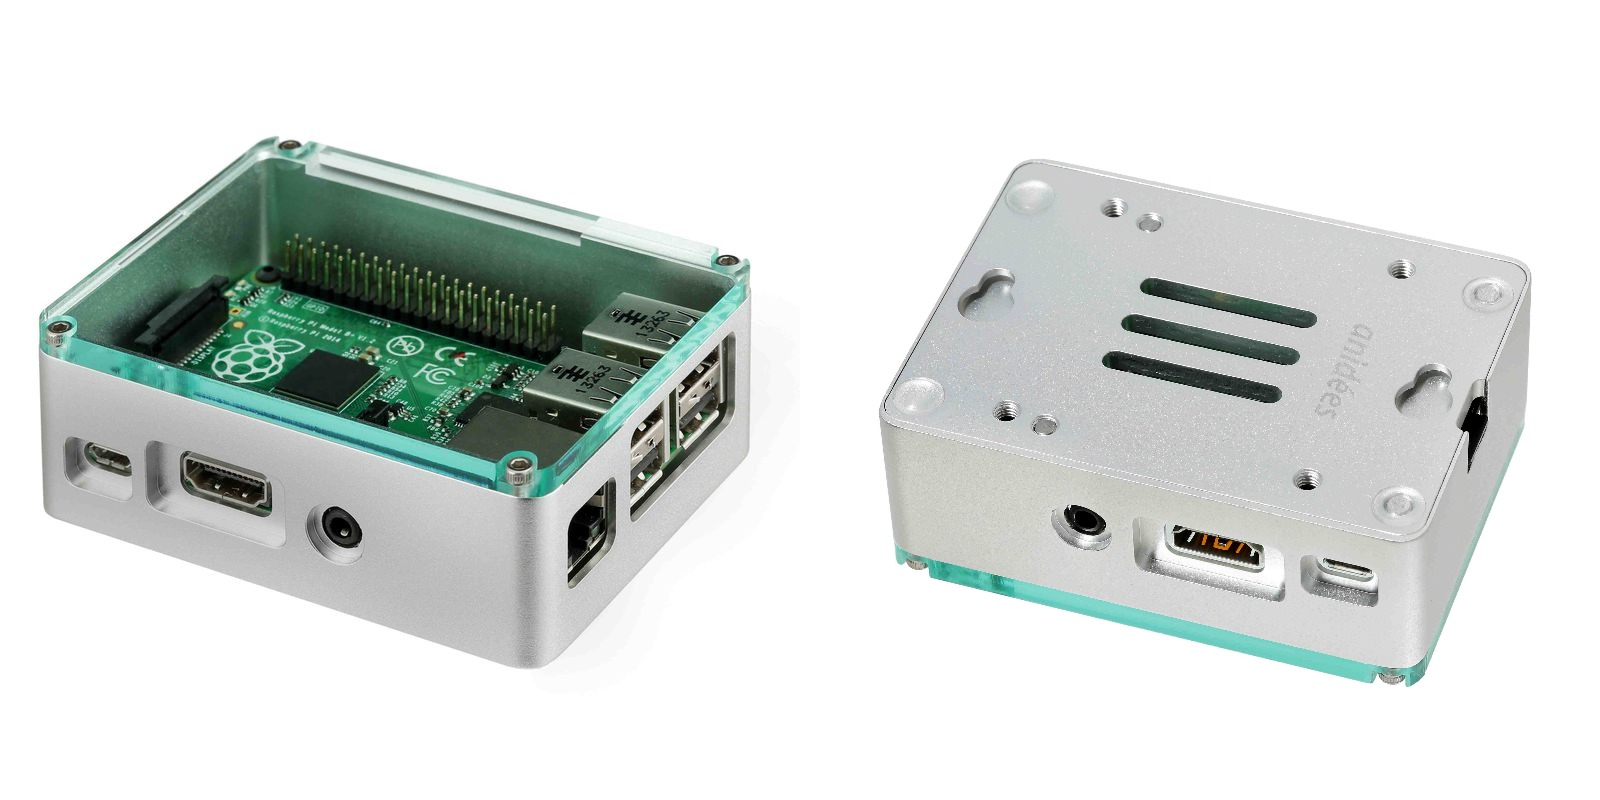 anidees_case_for_raspberrypi_model_b_plus_clear_02